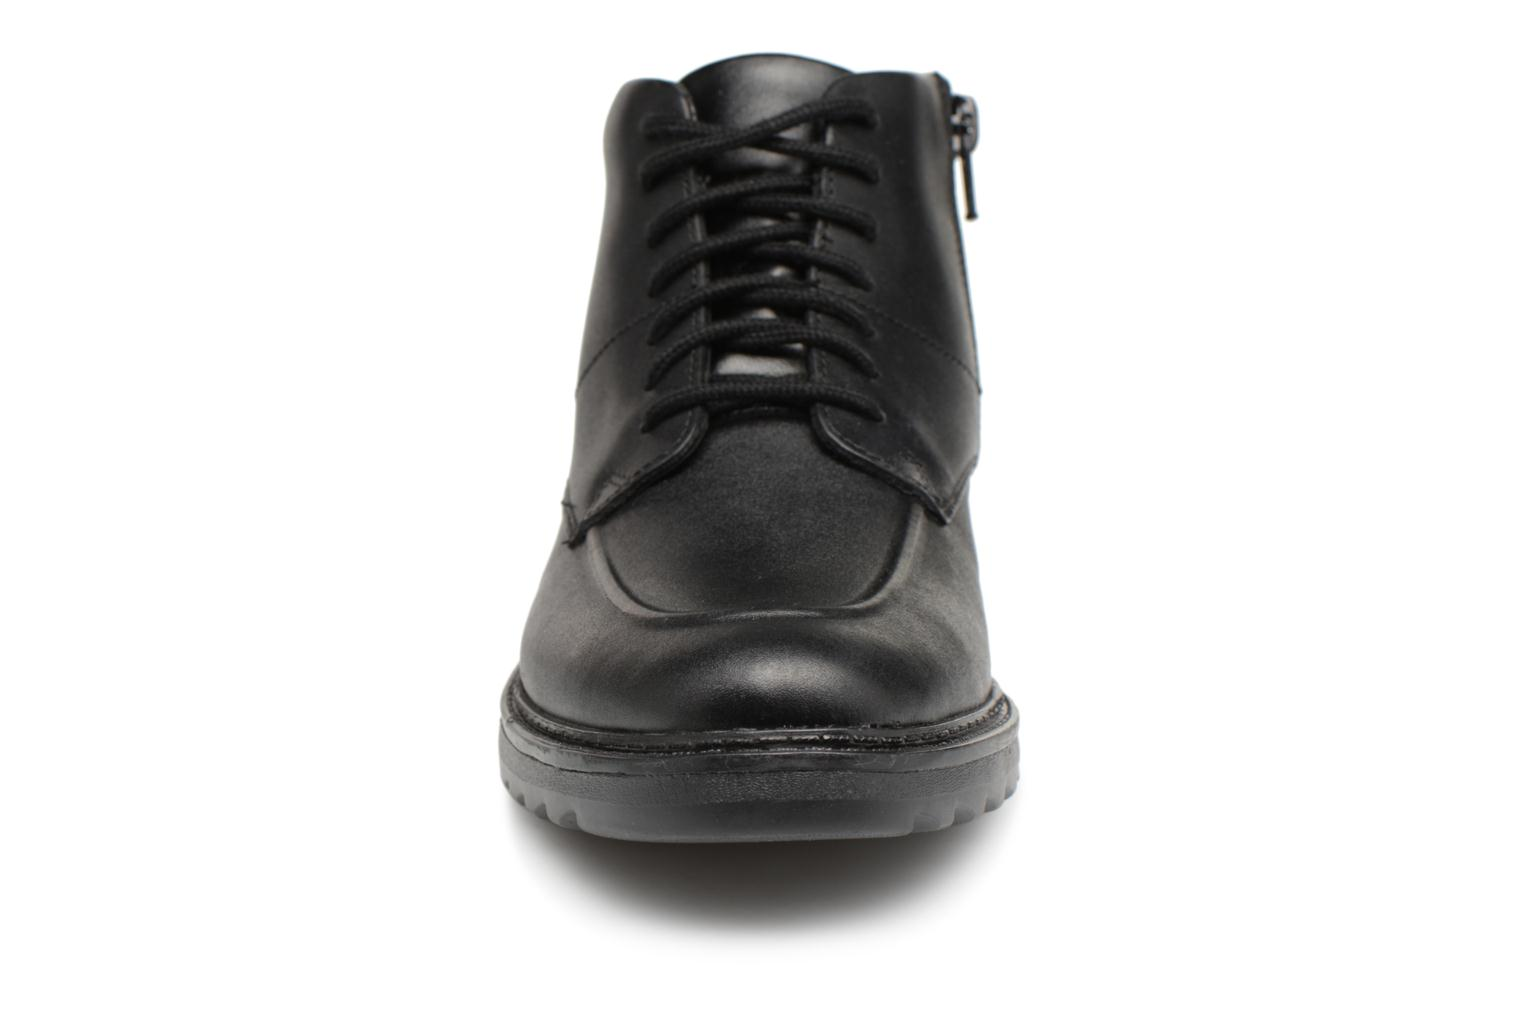 Asher Black Clarks Clarks Clarks leather Black Street Asher leather Street WW8YqOSw